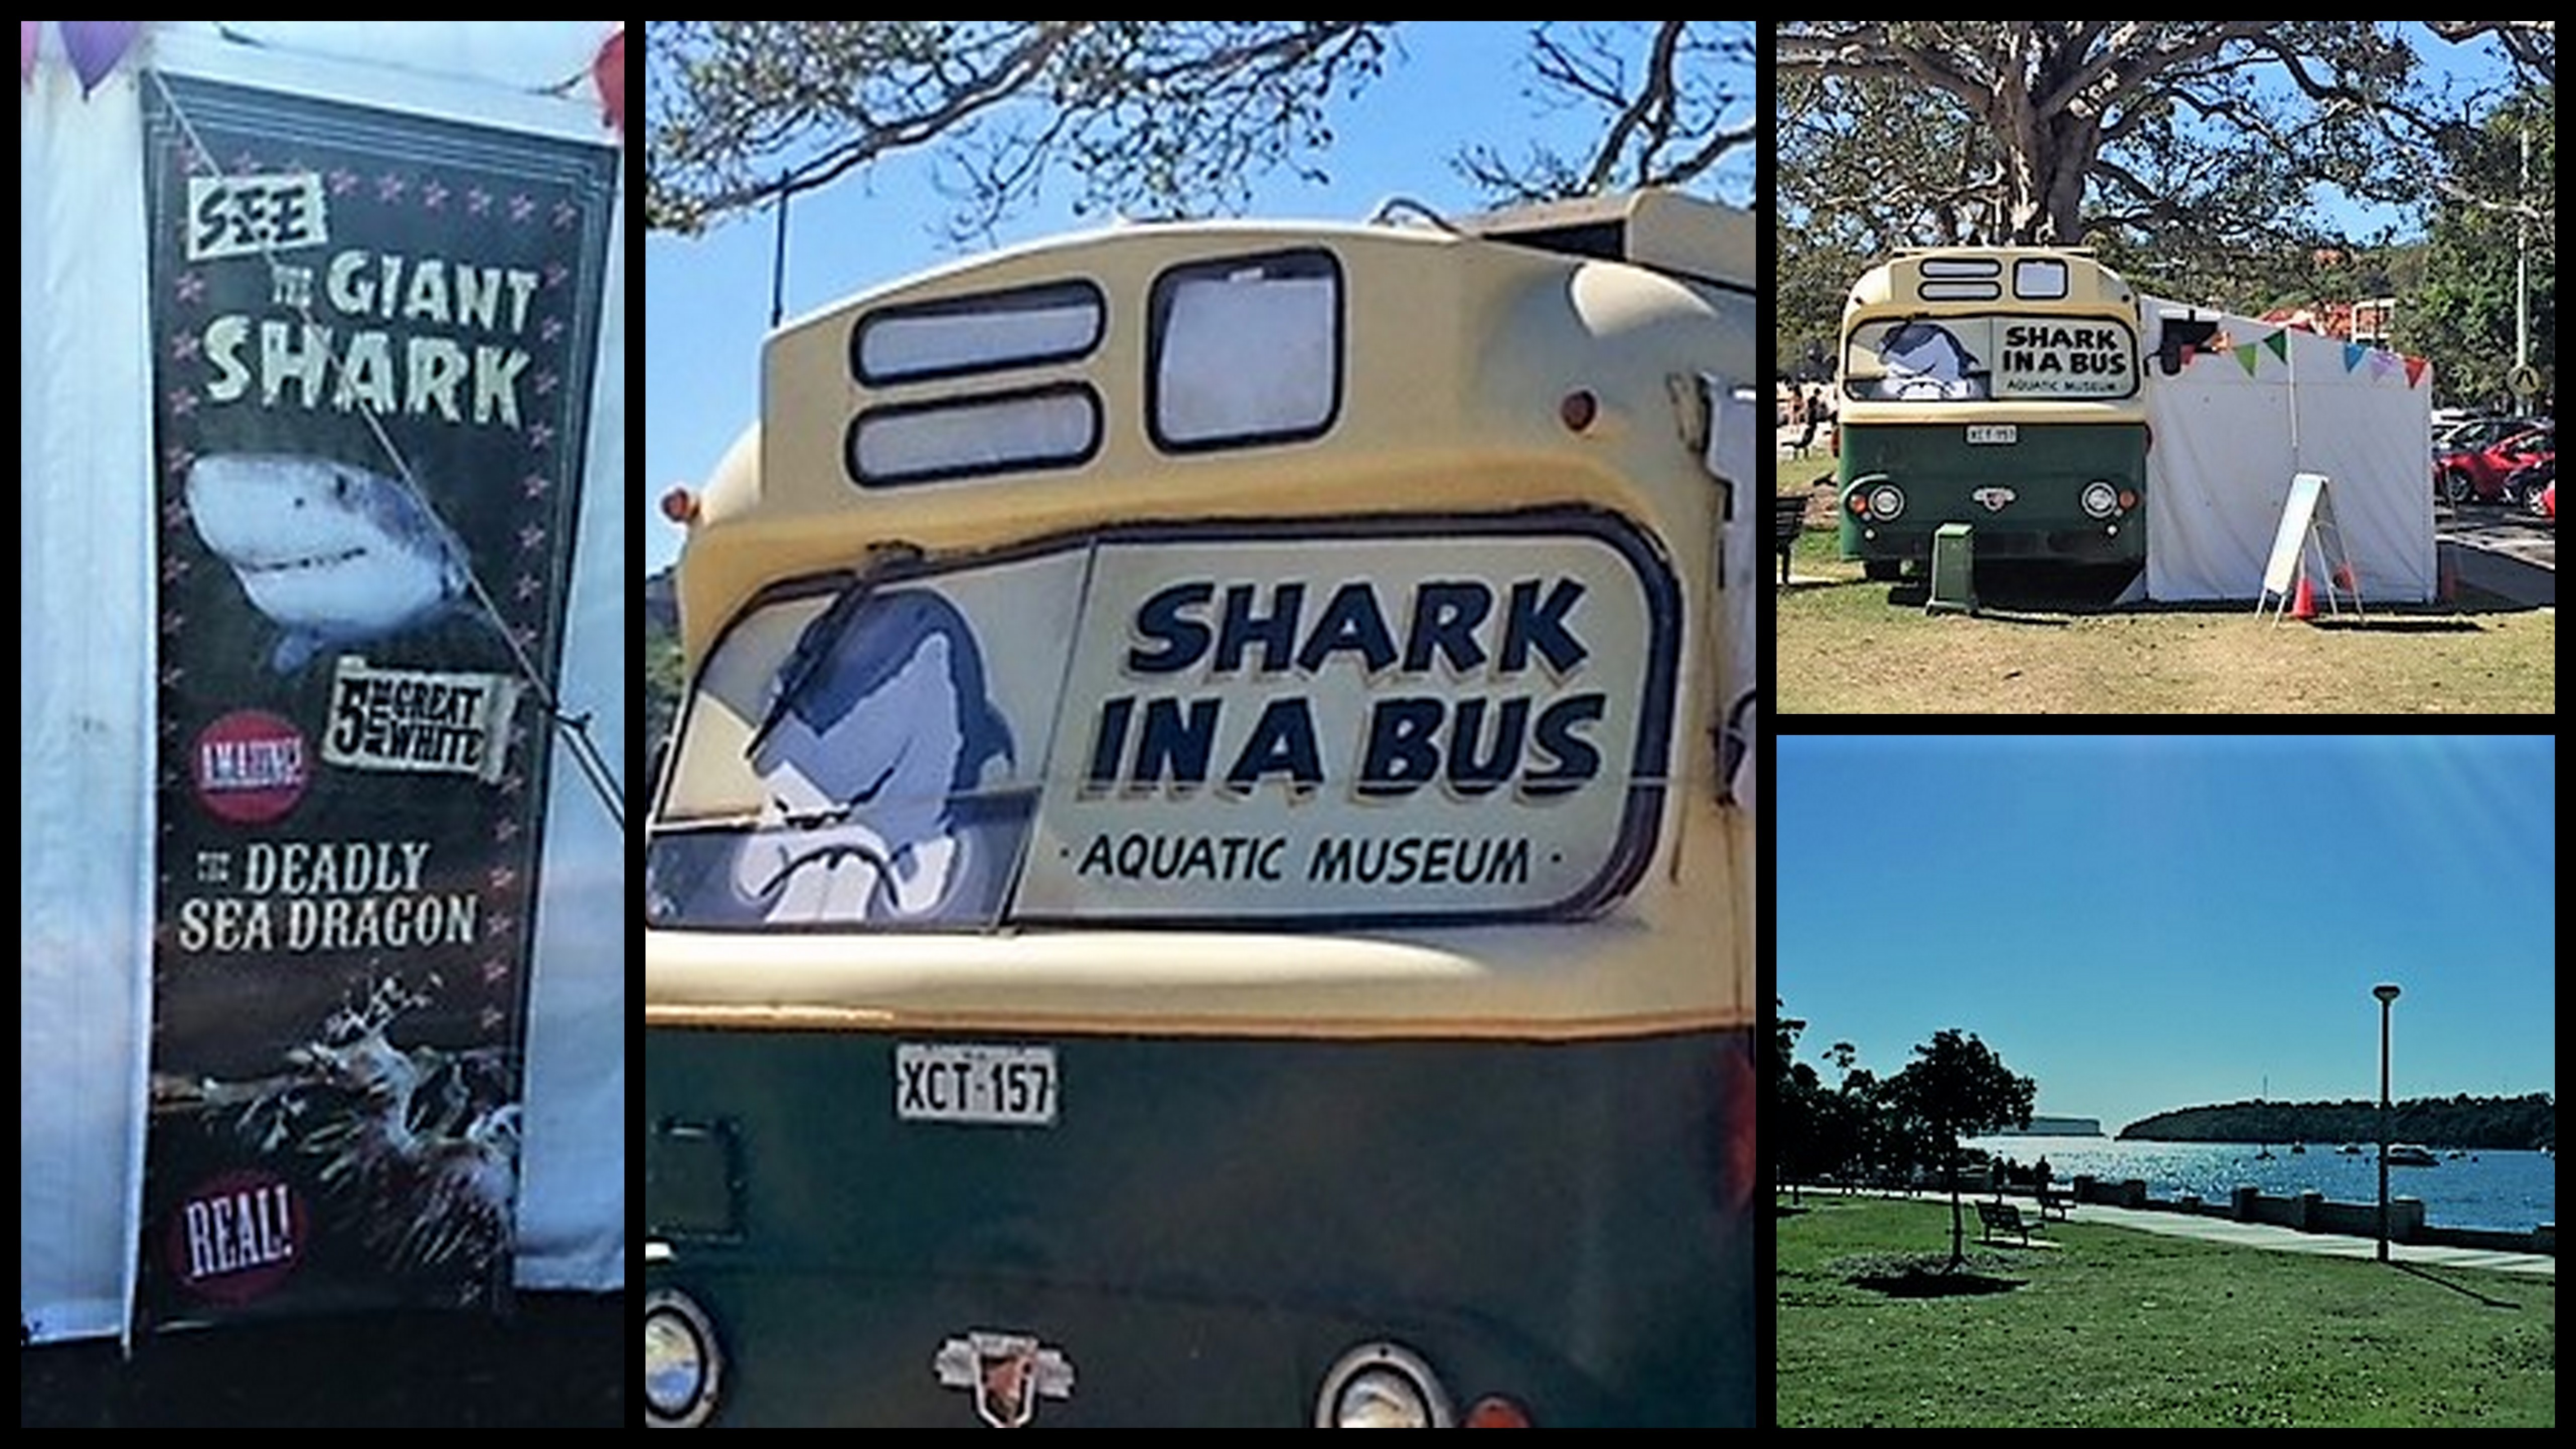 Shark In A Bus Mosman Balmoral Beach Sydney Museum Heritage Museum Shells Great White Skylab Space